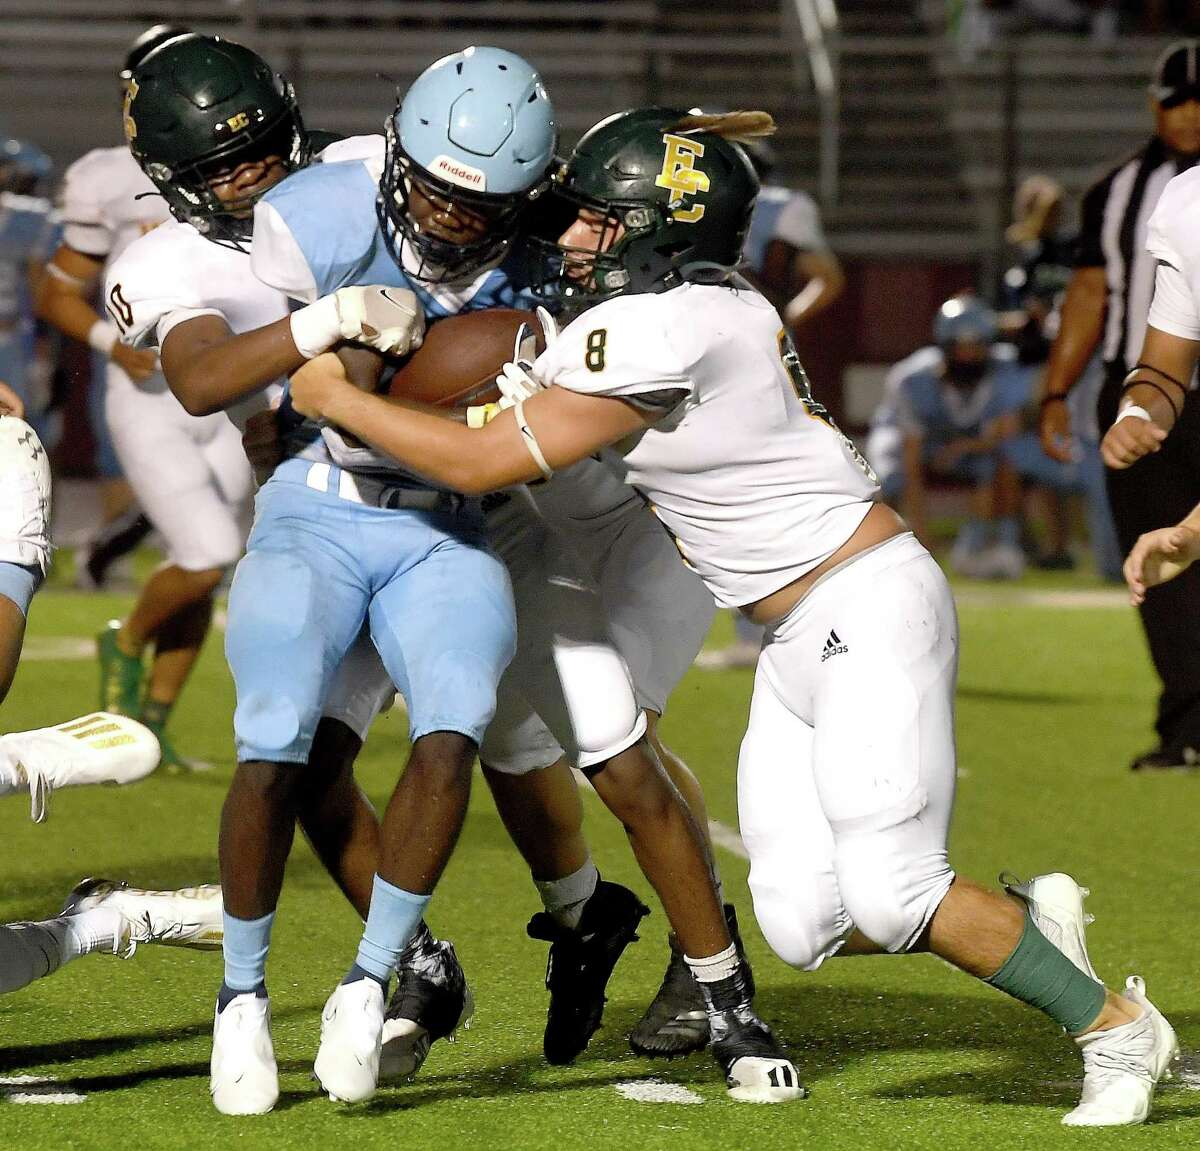 East Chambers' Cooper McKay pushes back aigainst West Rusk's advance during their game Thursday in Jasper. Photo made Thursday, August 26, 2021 Kim Brent/The Enterprise